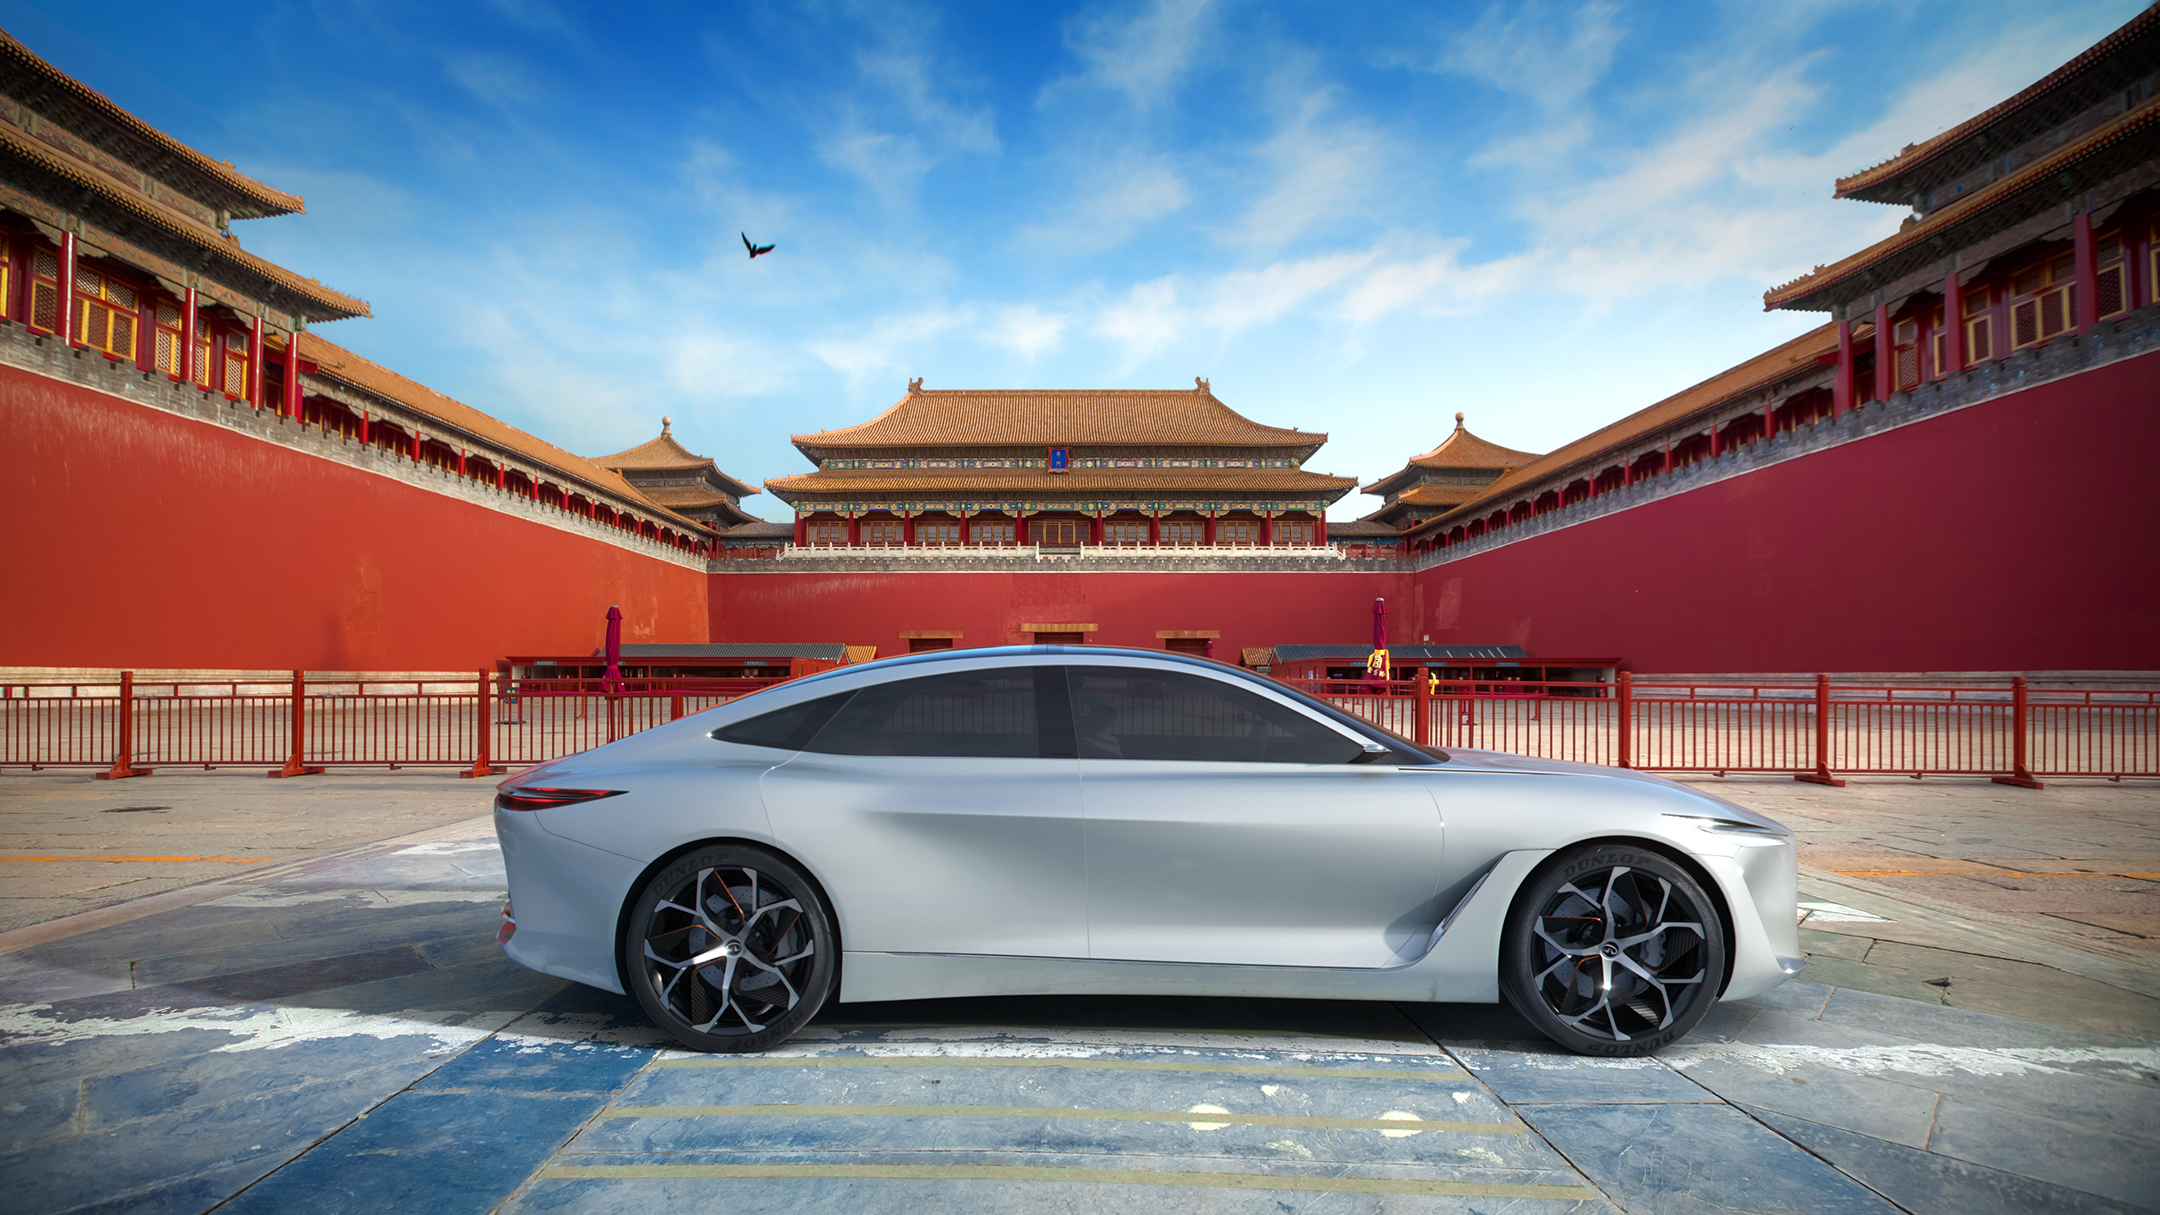 Infiniti at the forbidden palace